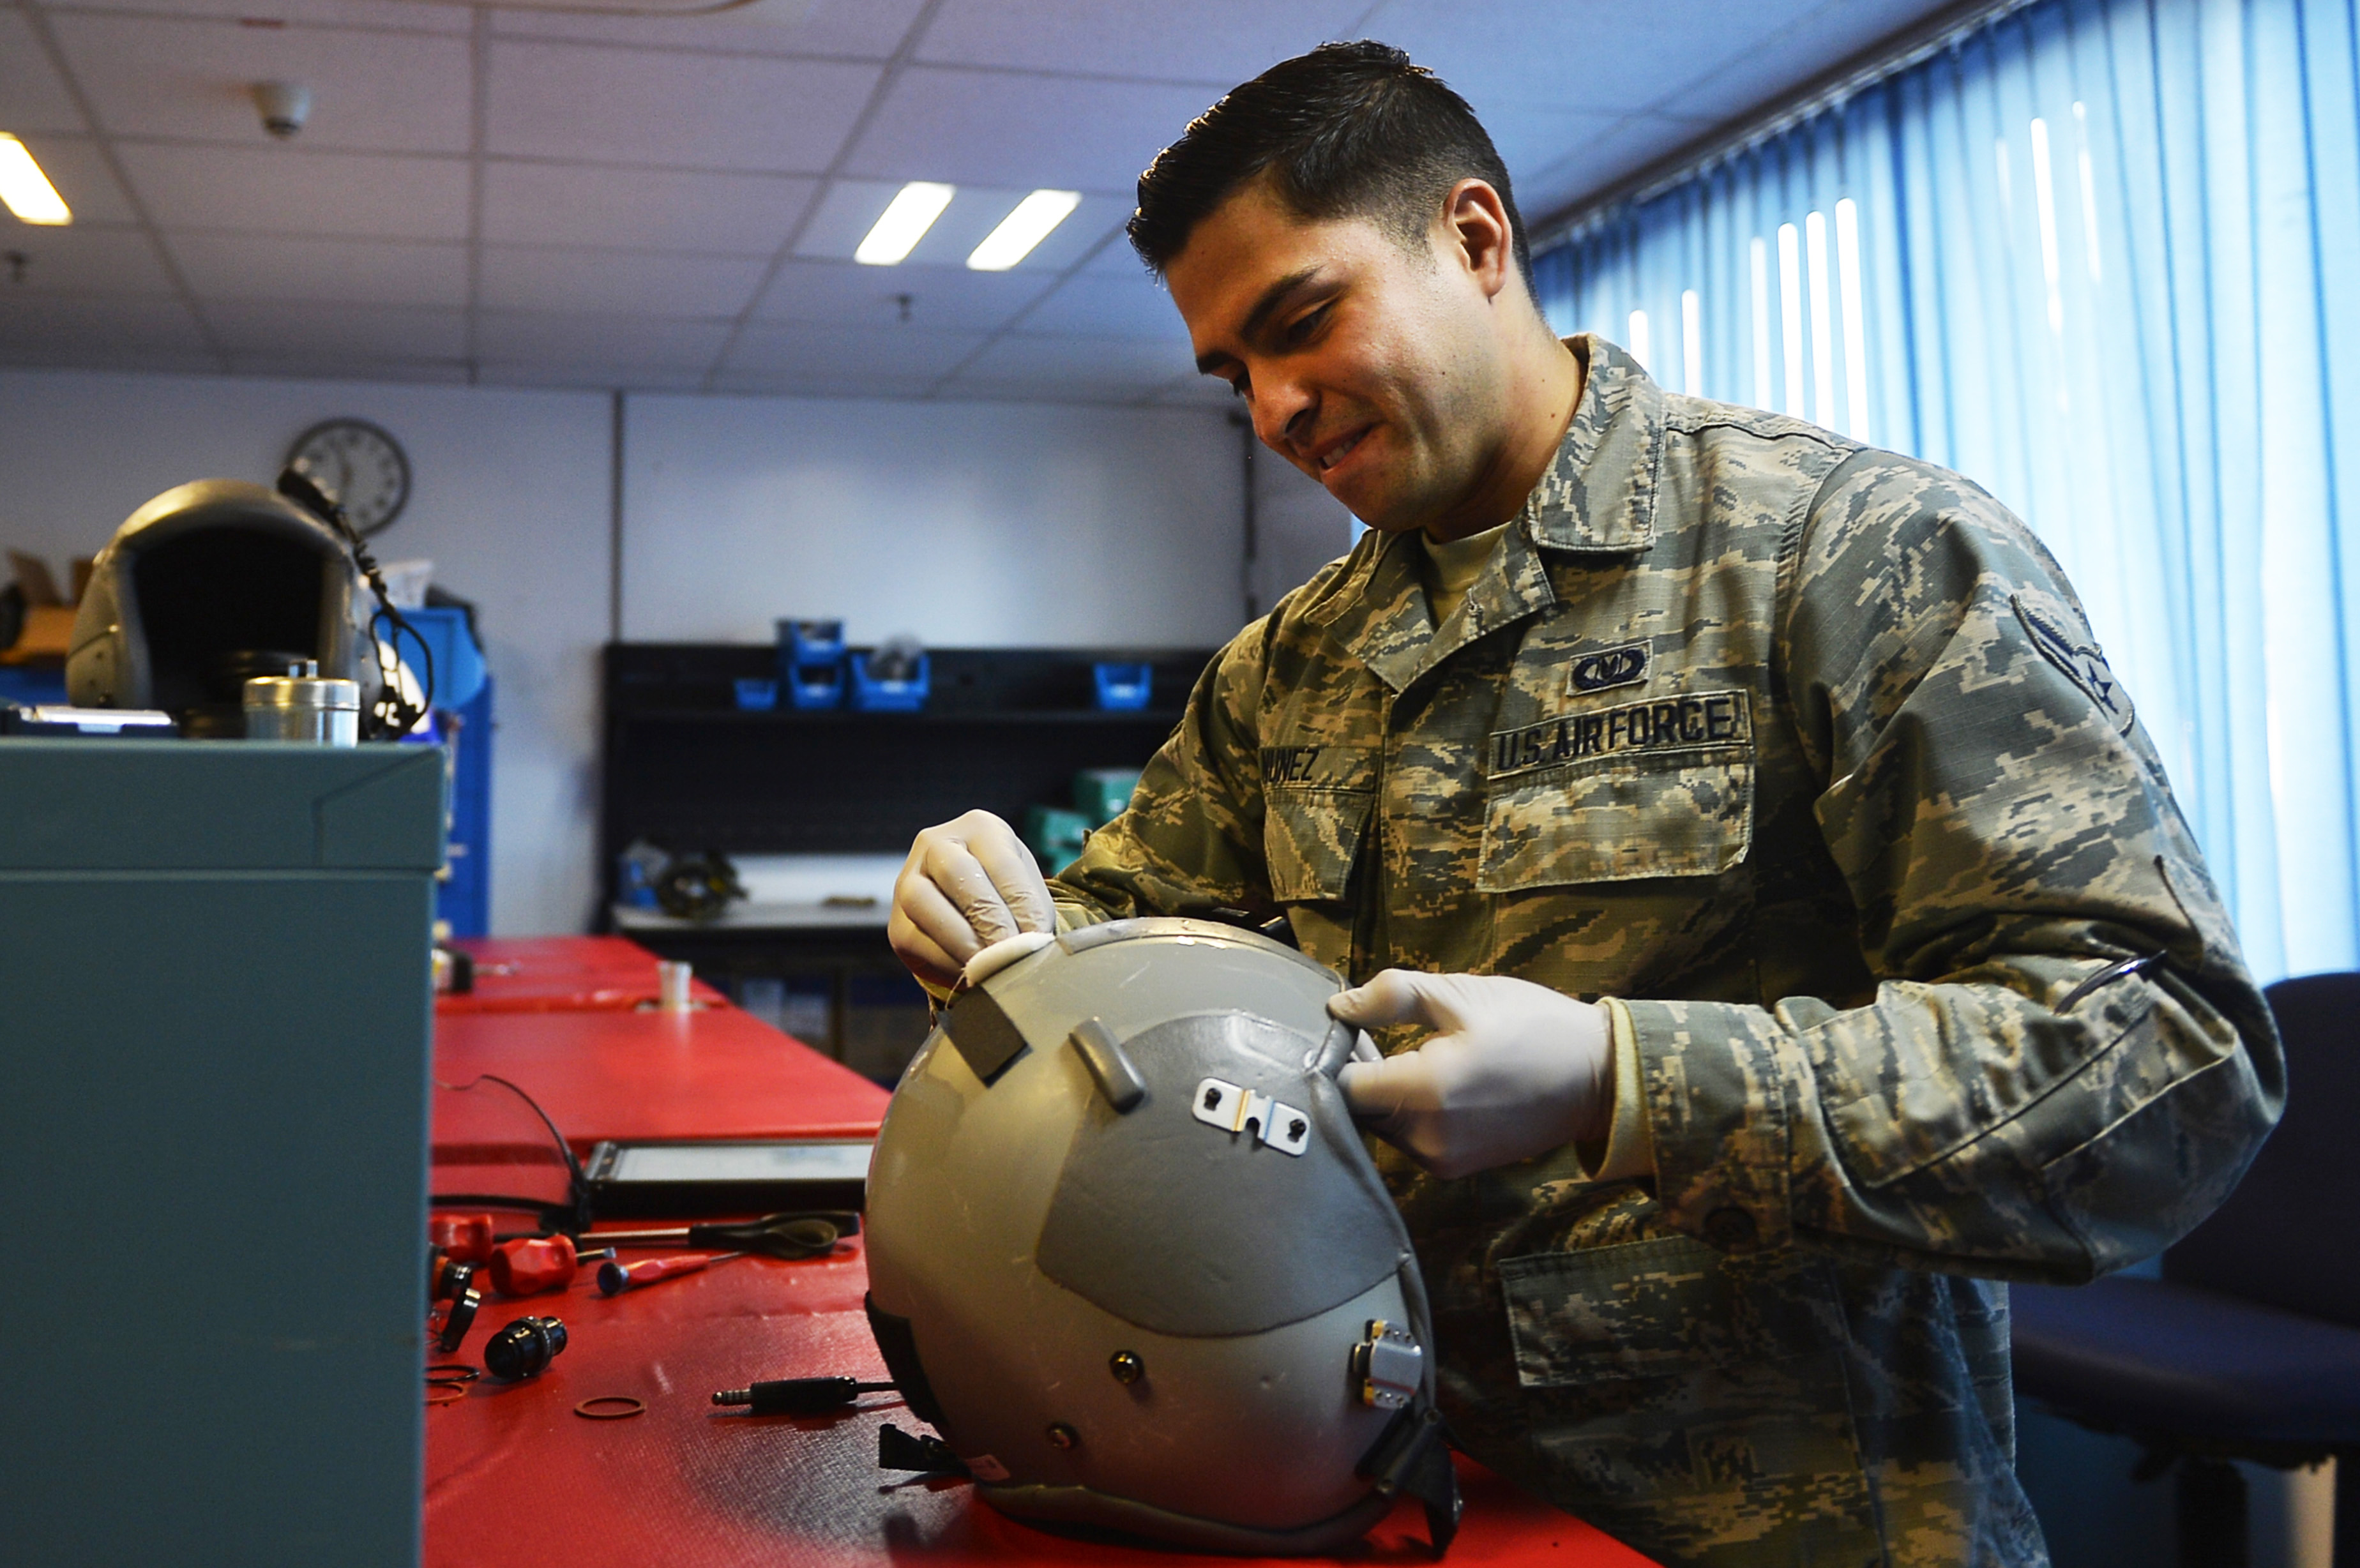 U.S. Air Force Airman 1st Class Manuel Nunez, 86th Operations Support Squadron aircrew flight equipment technician, cleans a helmet on Ramstein Air Base, Germany, Oct. 17, 2017. Airmen in AFE are responsible for inspecting, maintaining, and keeping accountability of various kinds of equipment used by aircrew. (U.S. Air Force photo by Airman 1st Class Joshua Magbanua)